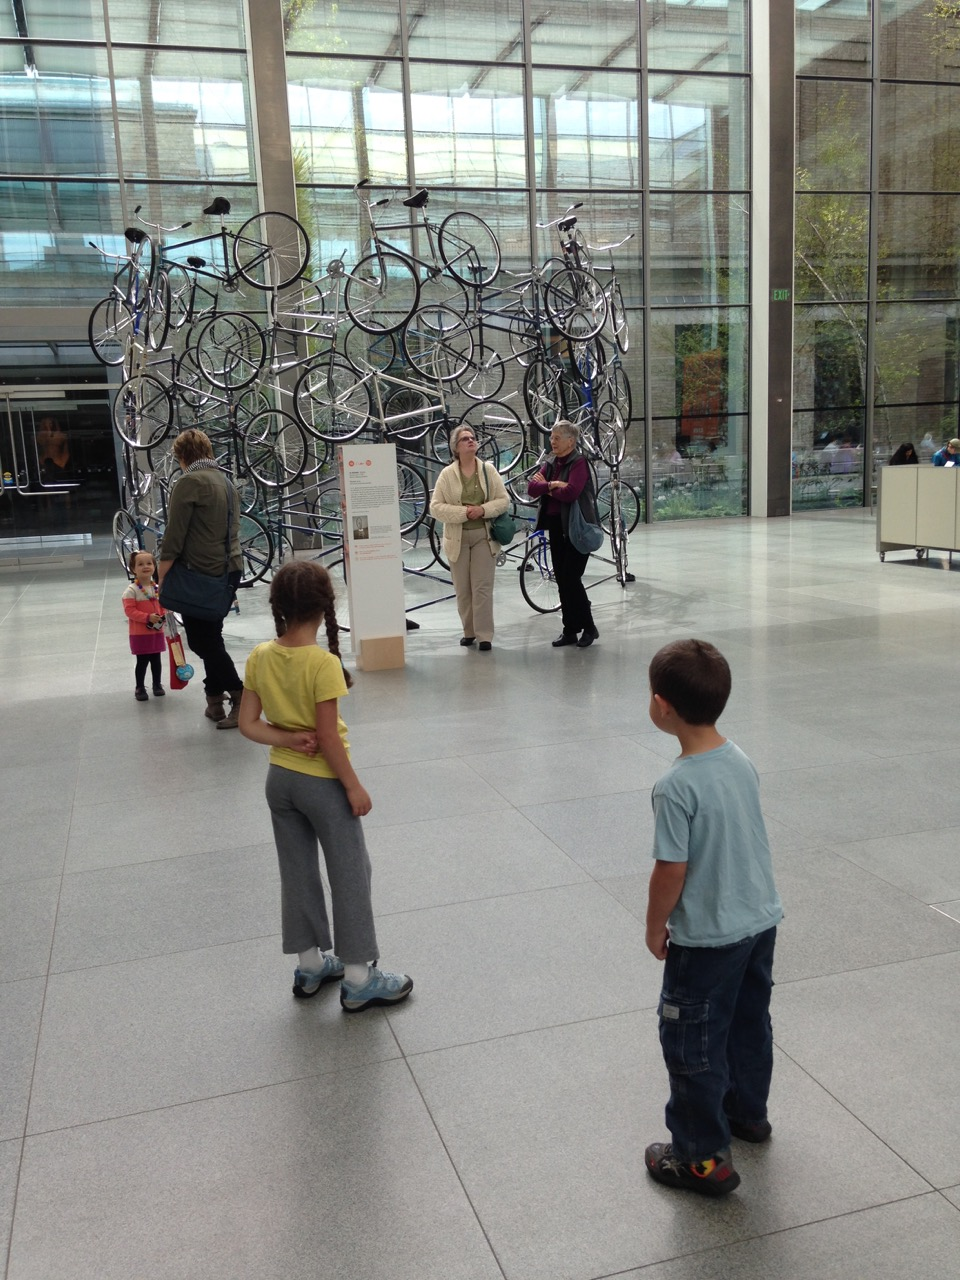 """Forever"" an installation made of bicycles from Chinese artist Ai Weiwei, part of the Megacities Asia exhibit."